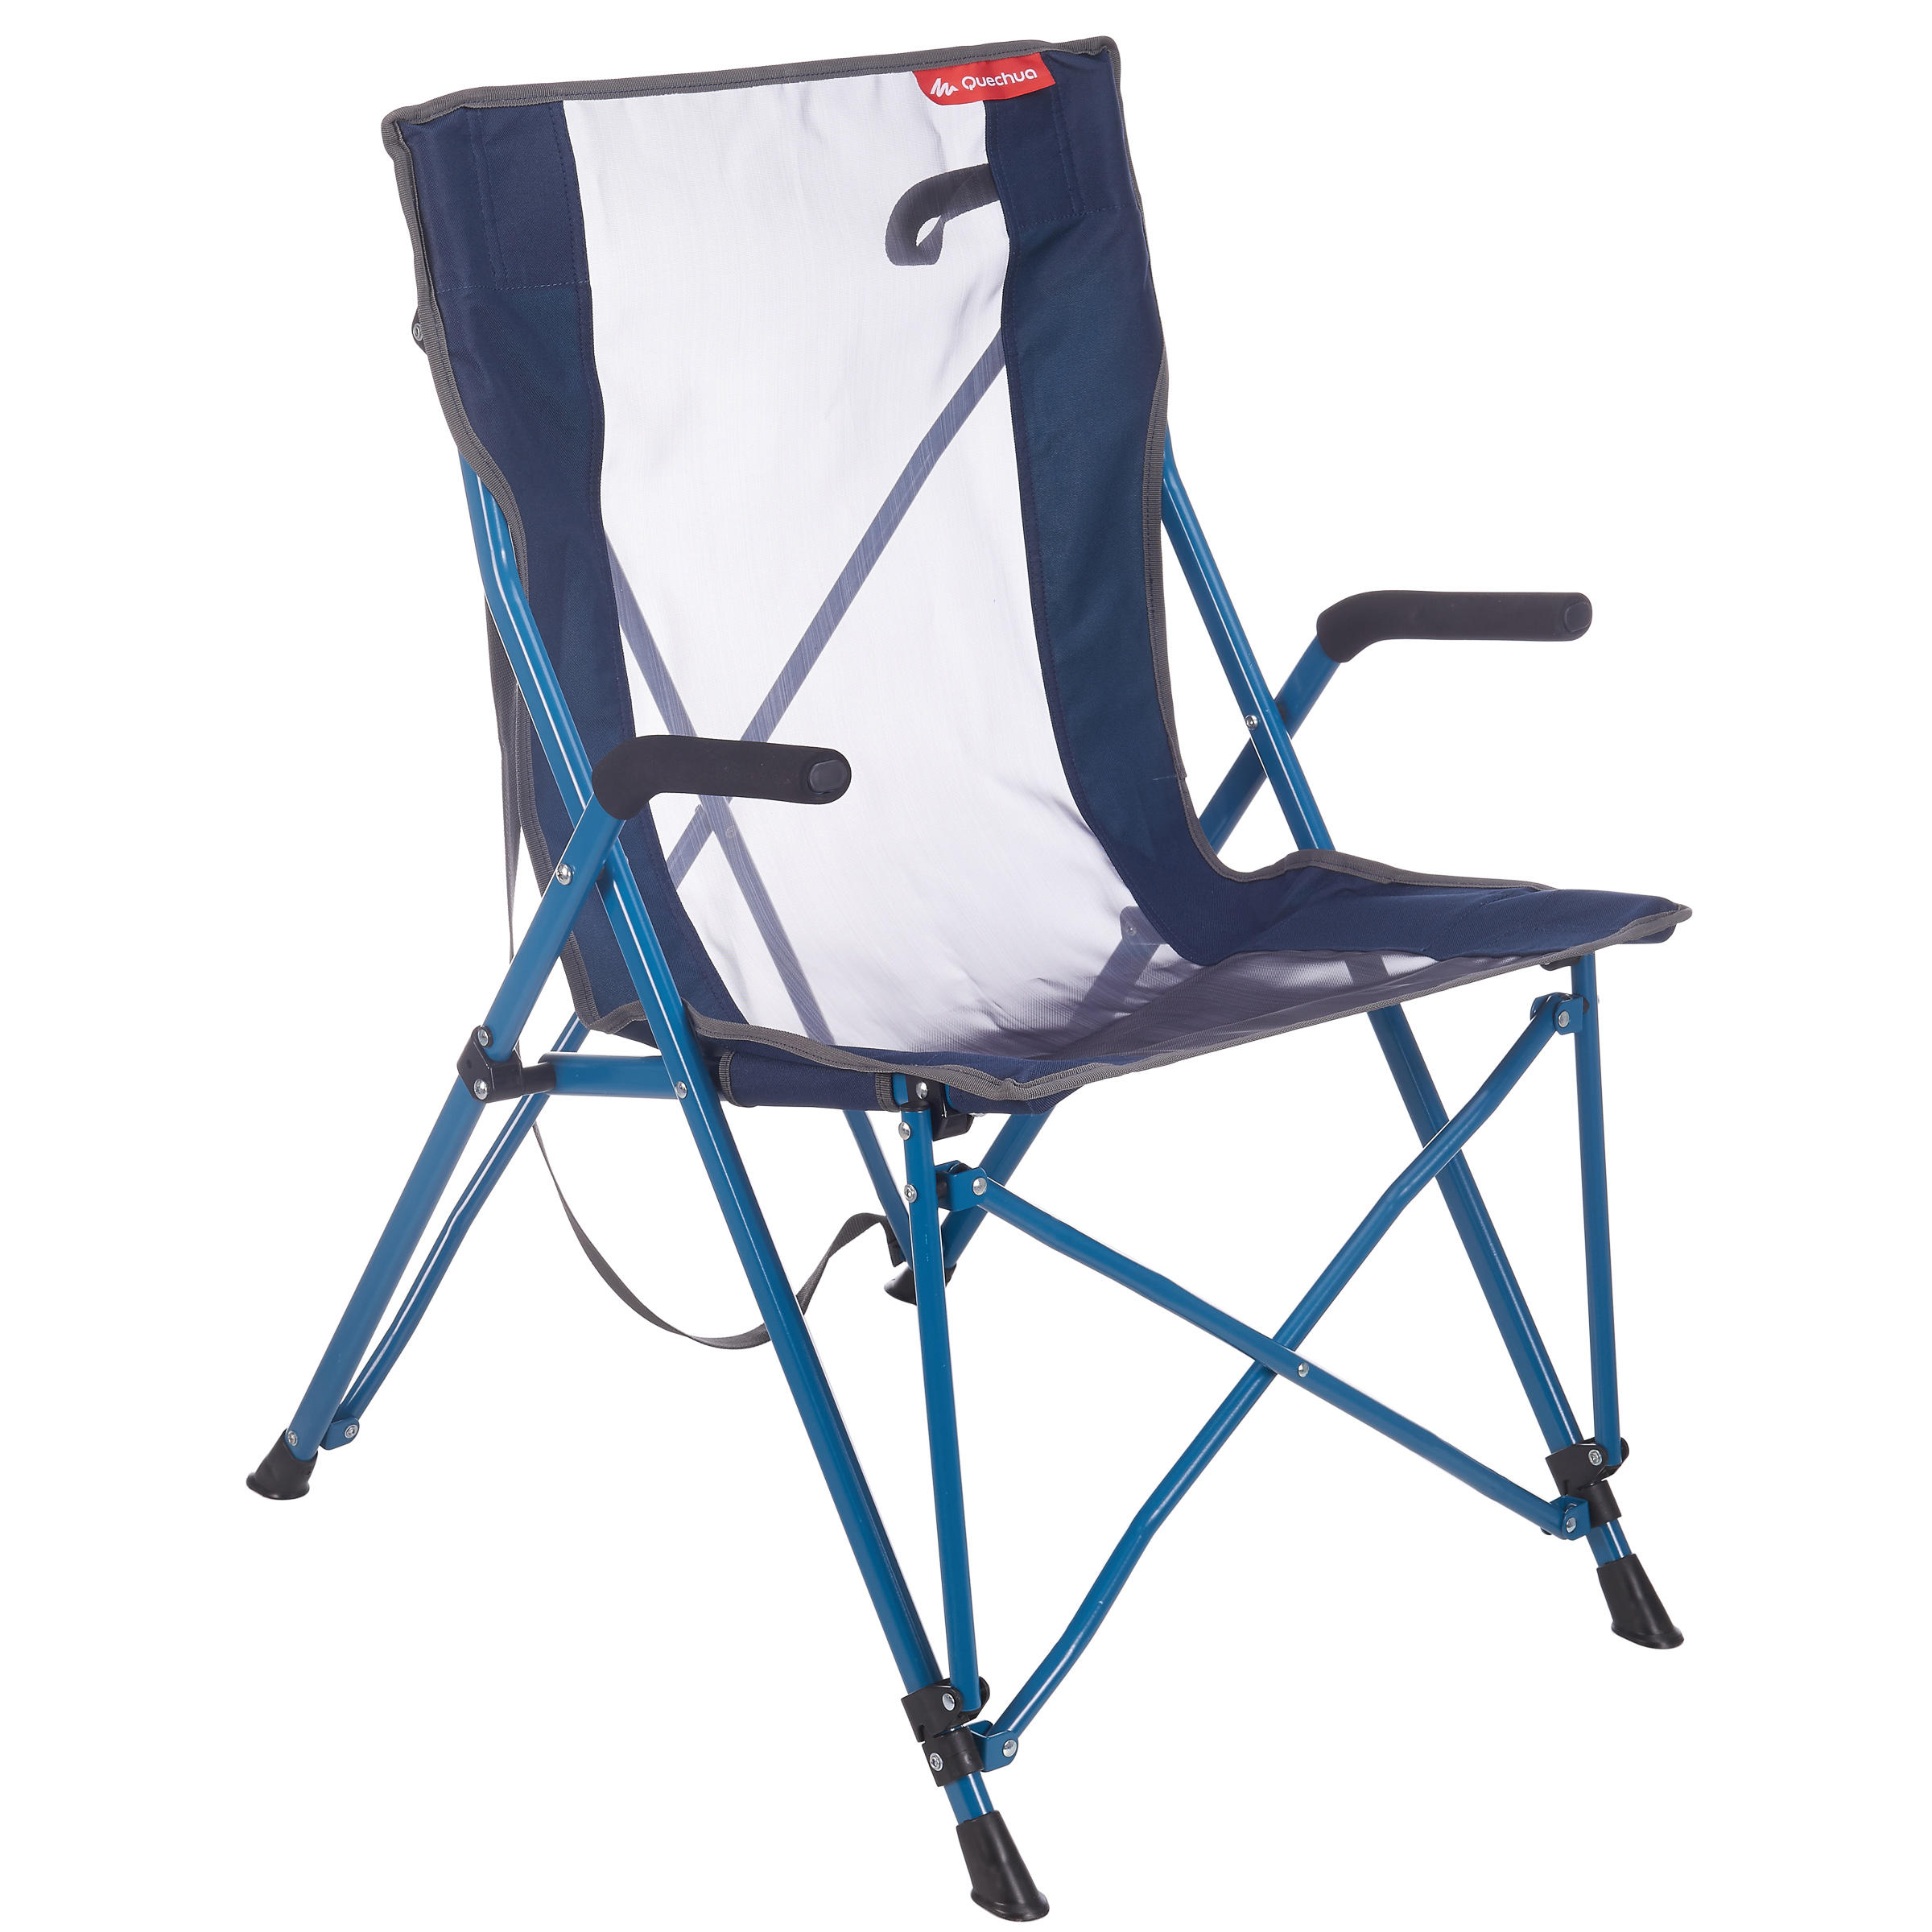 Comfort Camping Chair / Hiker Camp - Blue